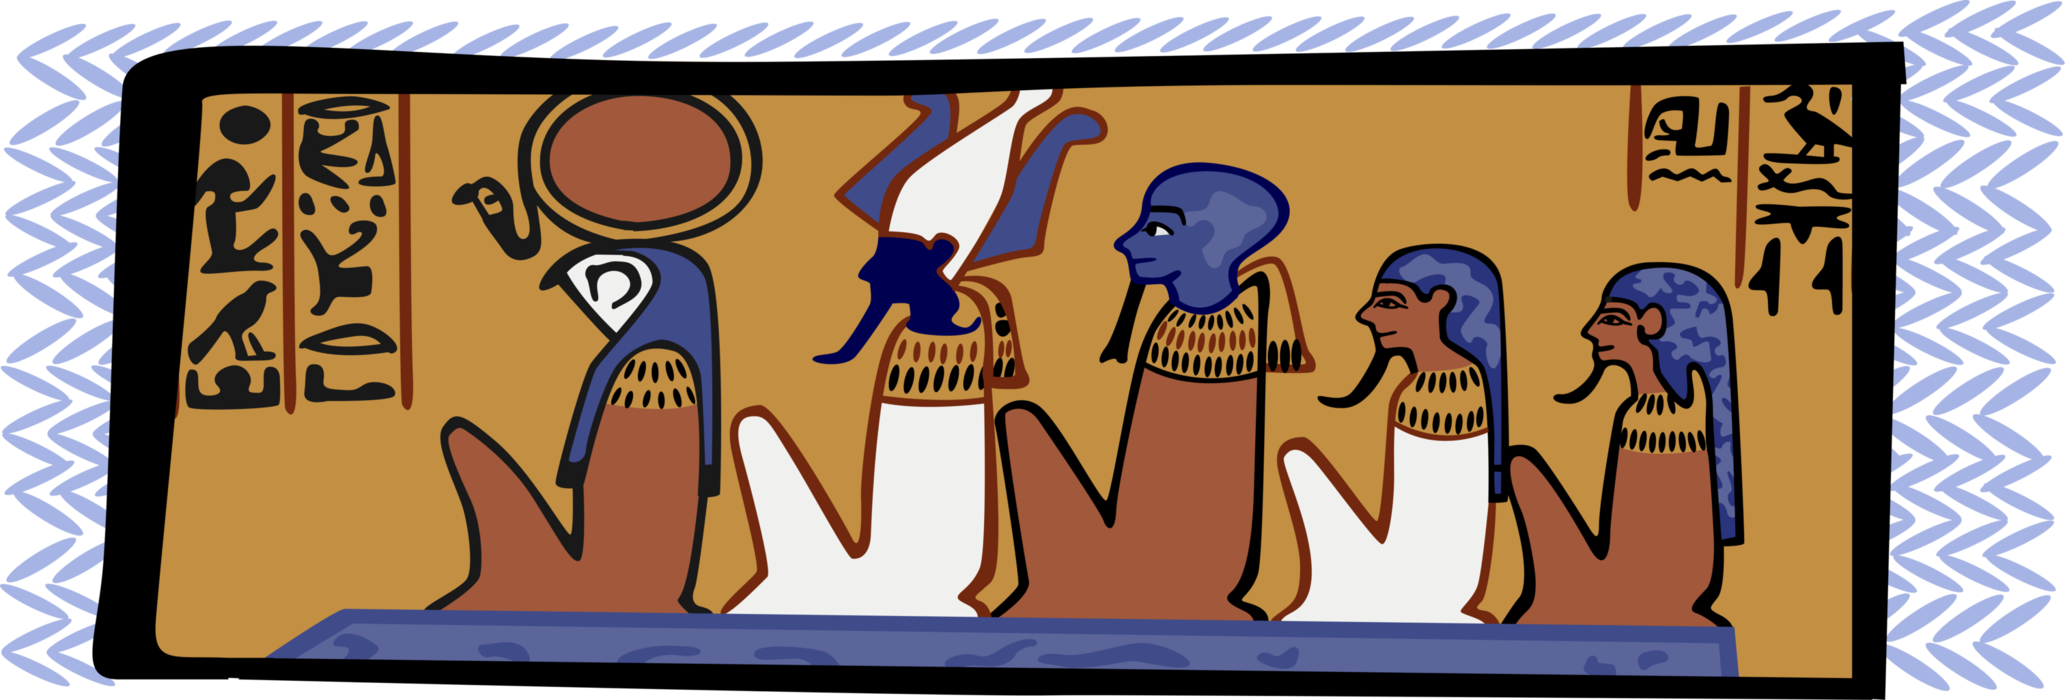 Vector Illustration of Ancient Egypt Egyptian Tomb Paintings